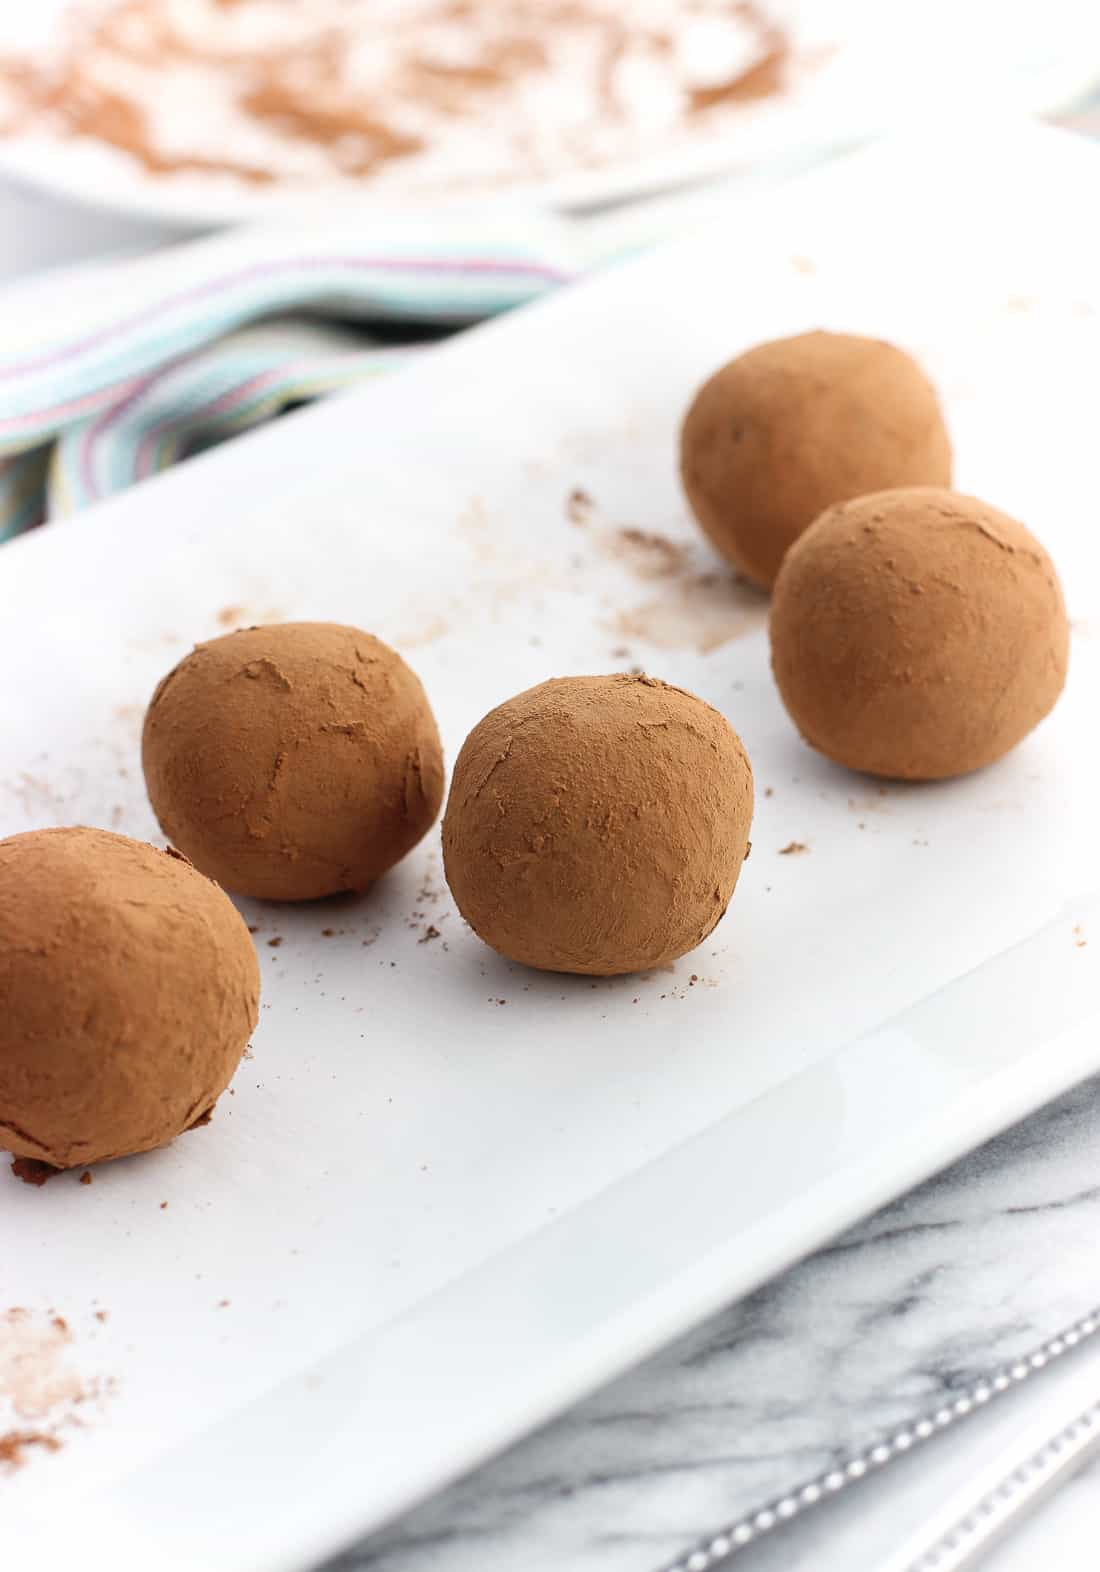 Chocolate Irish Cream Truffles are a rich and flavorful no-bake dessert that couldn't be easier! This chocolate truffle recipe yields a small-batch for indulgence in moderation. Just six truffles!